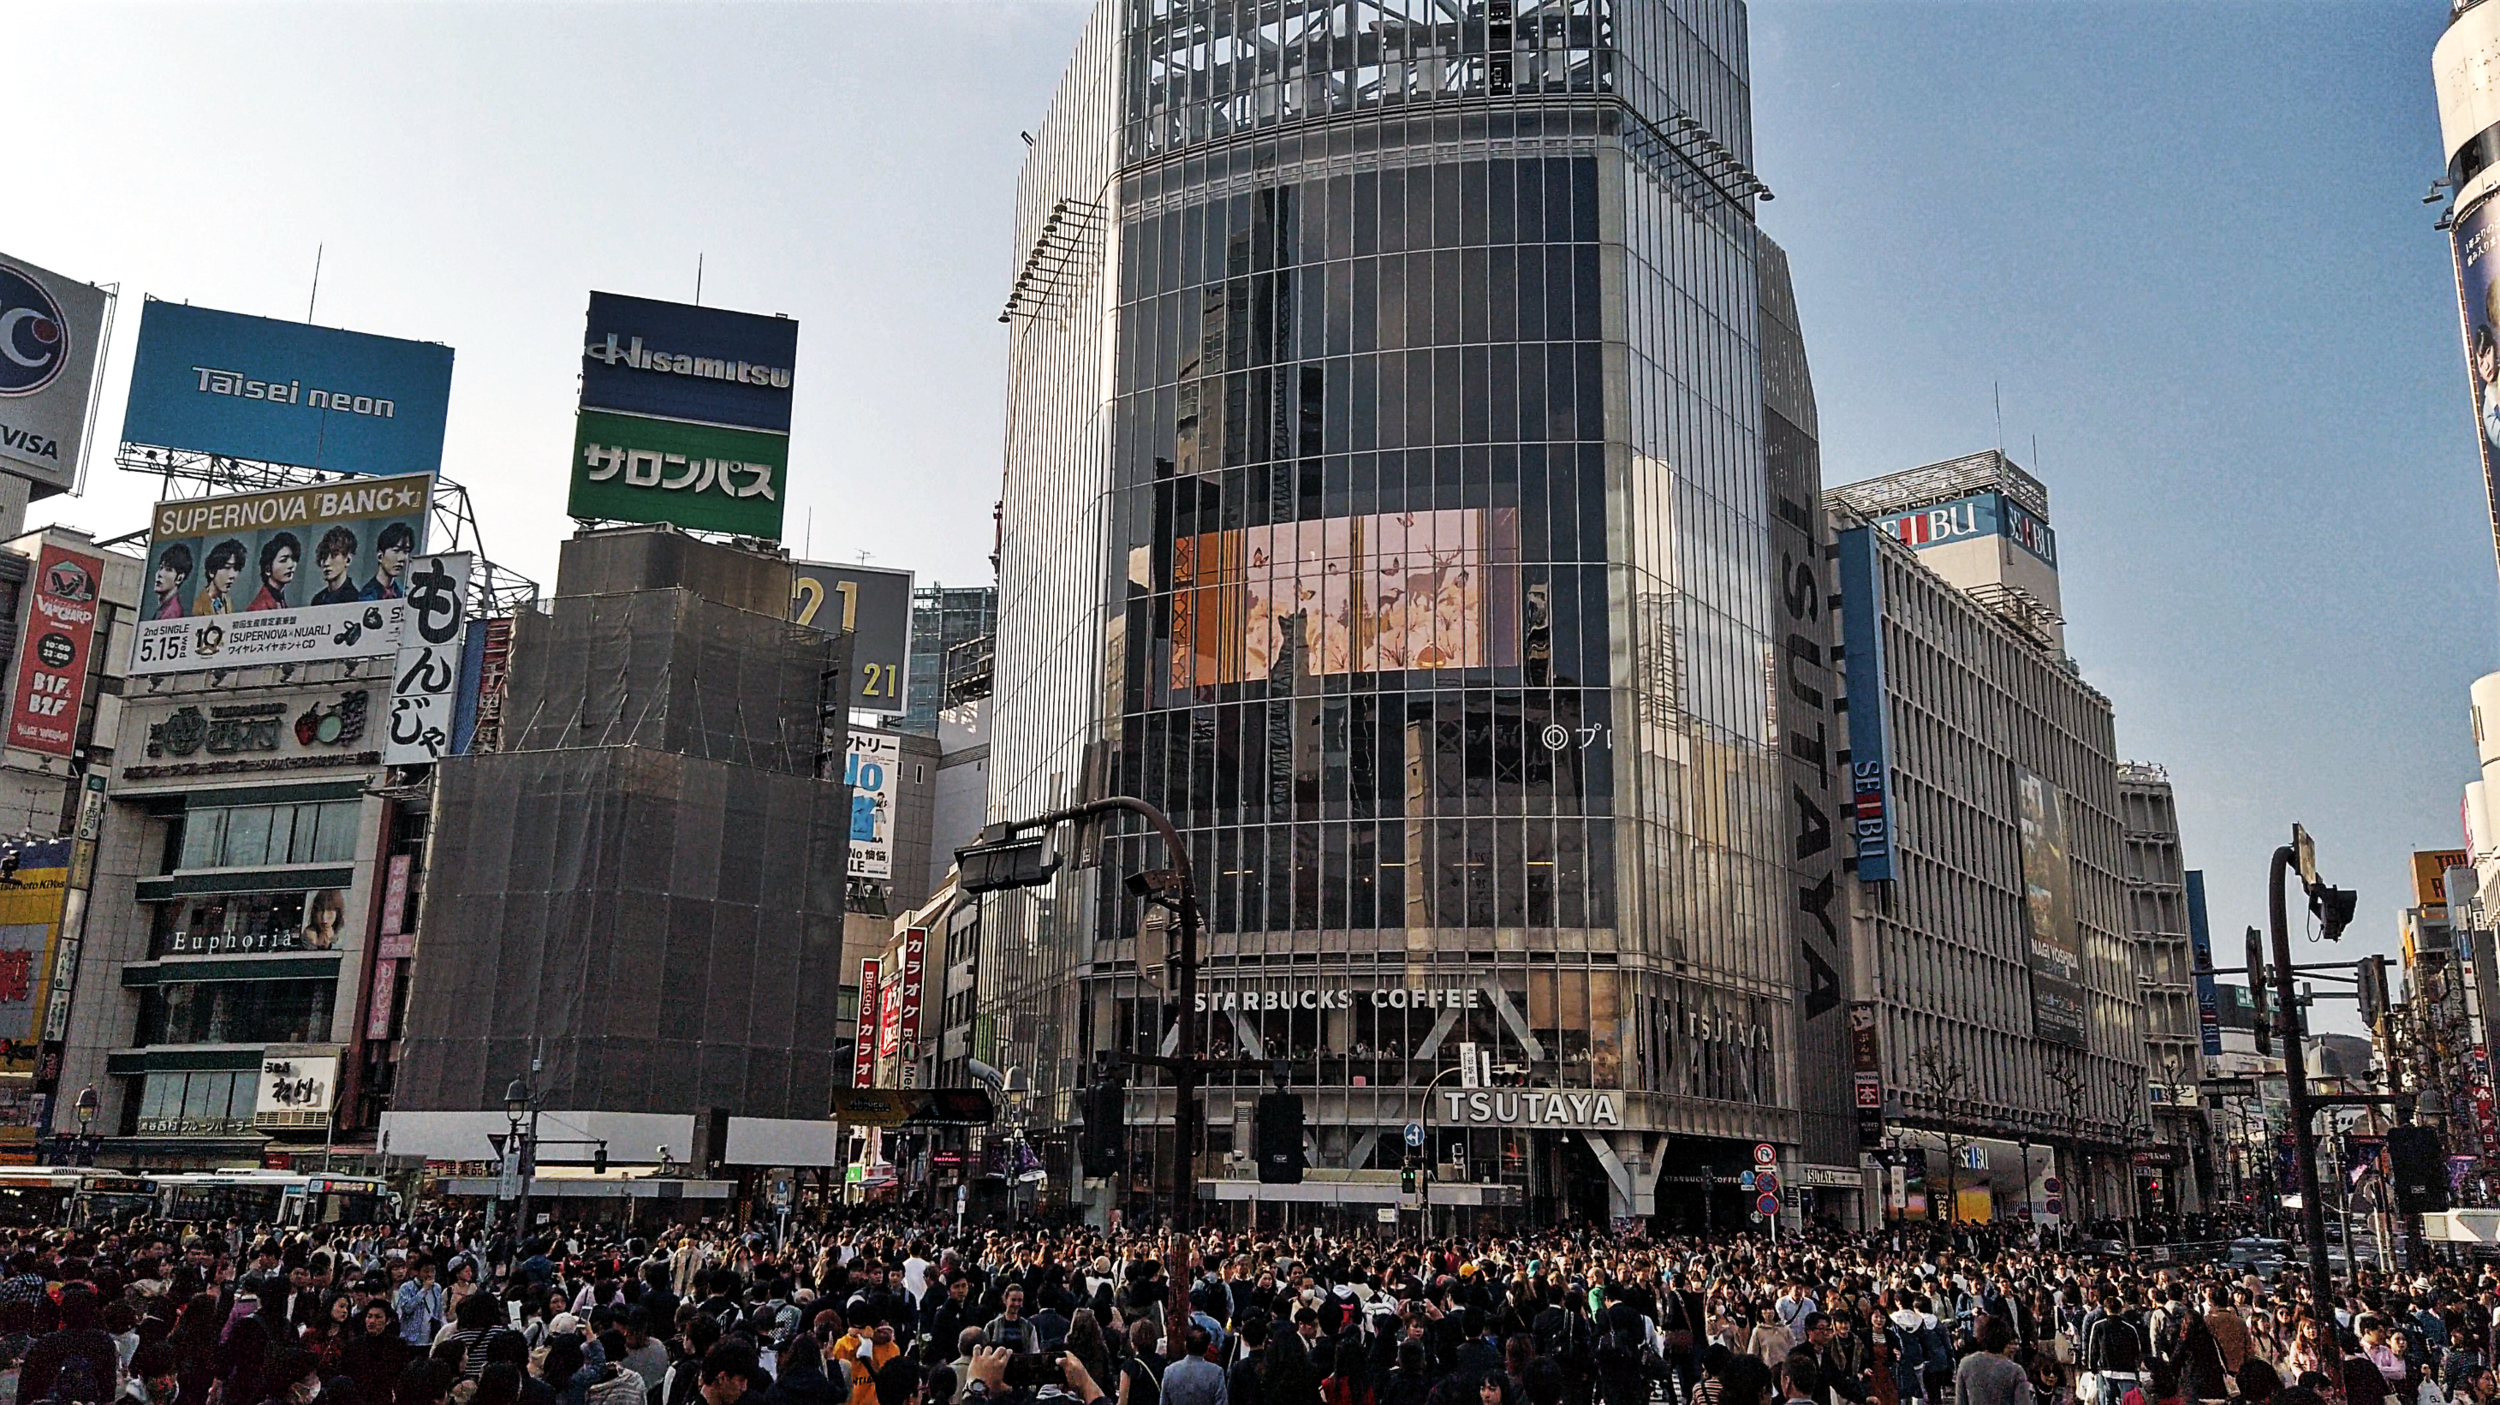 Shibuya Crossing -